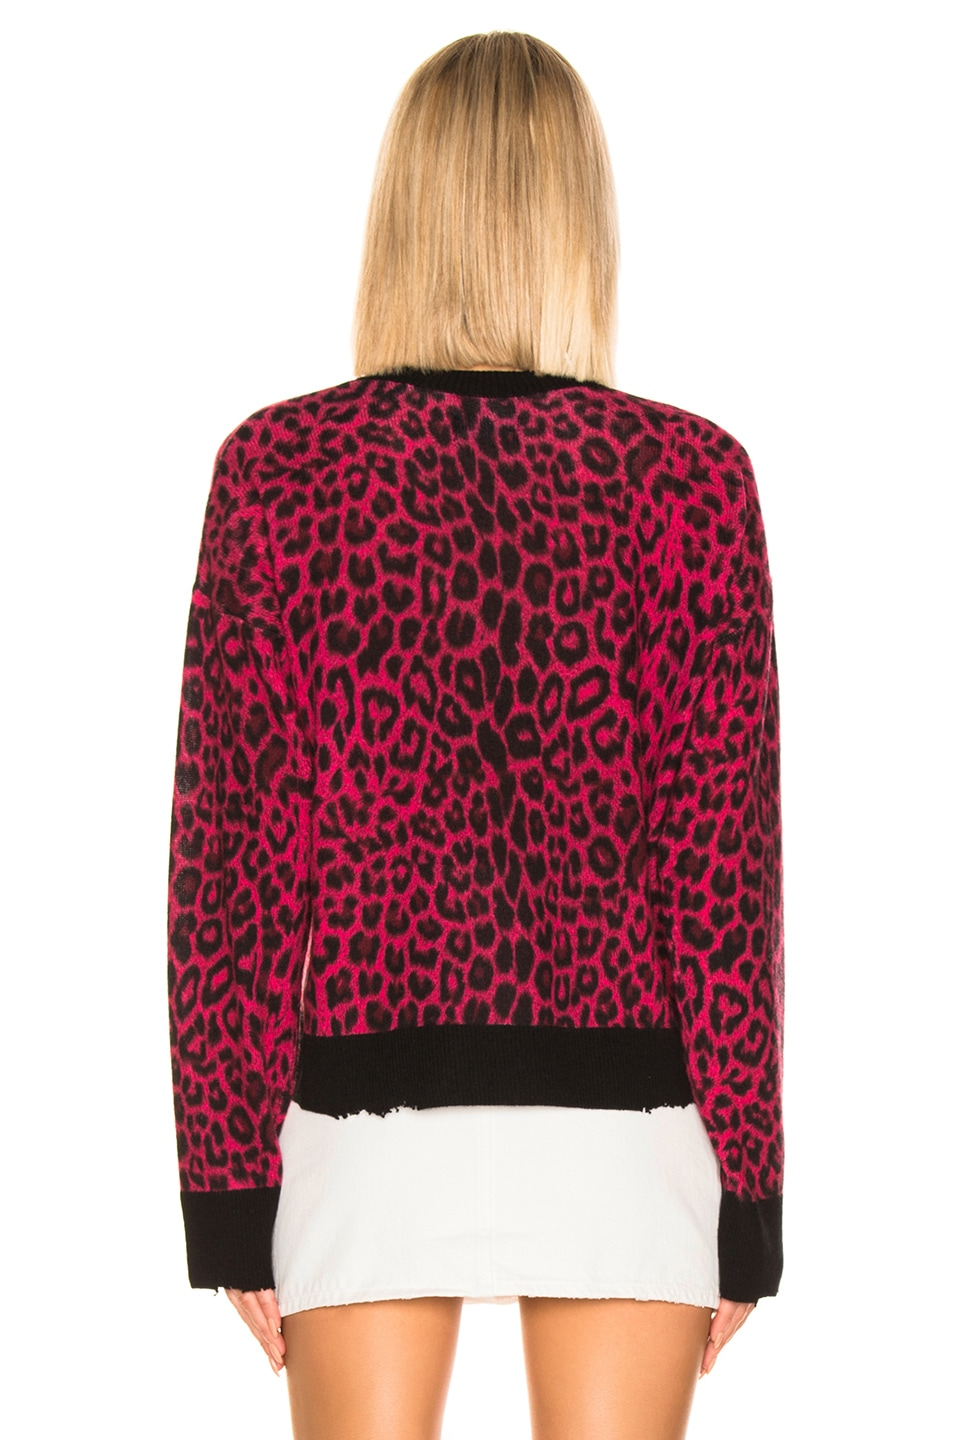 Image 3 of RtA Emma Sweater in Red Leopard Knit